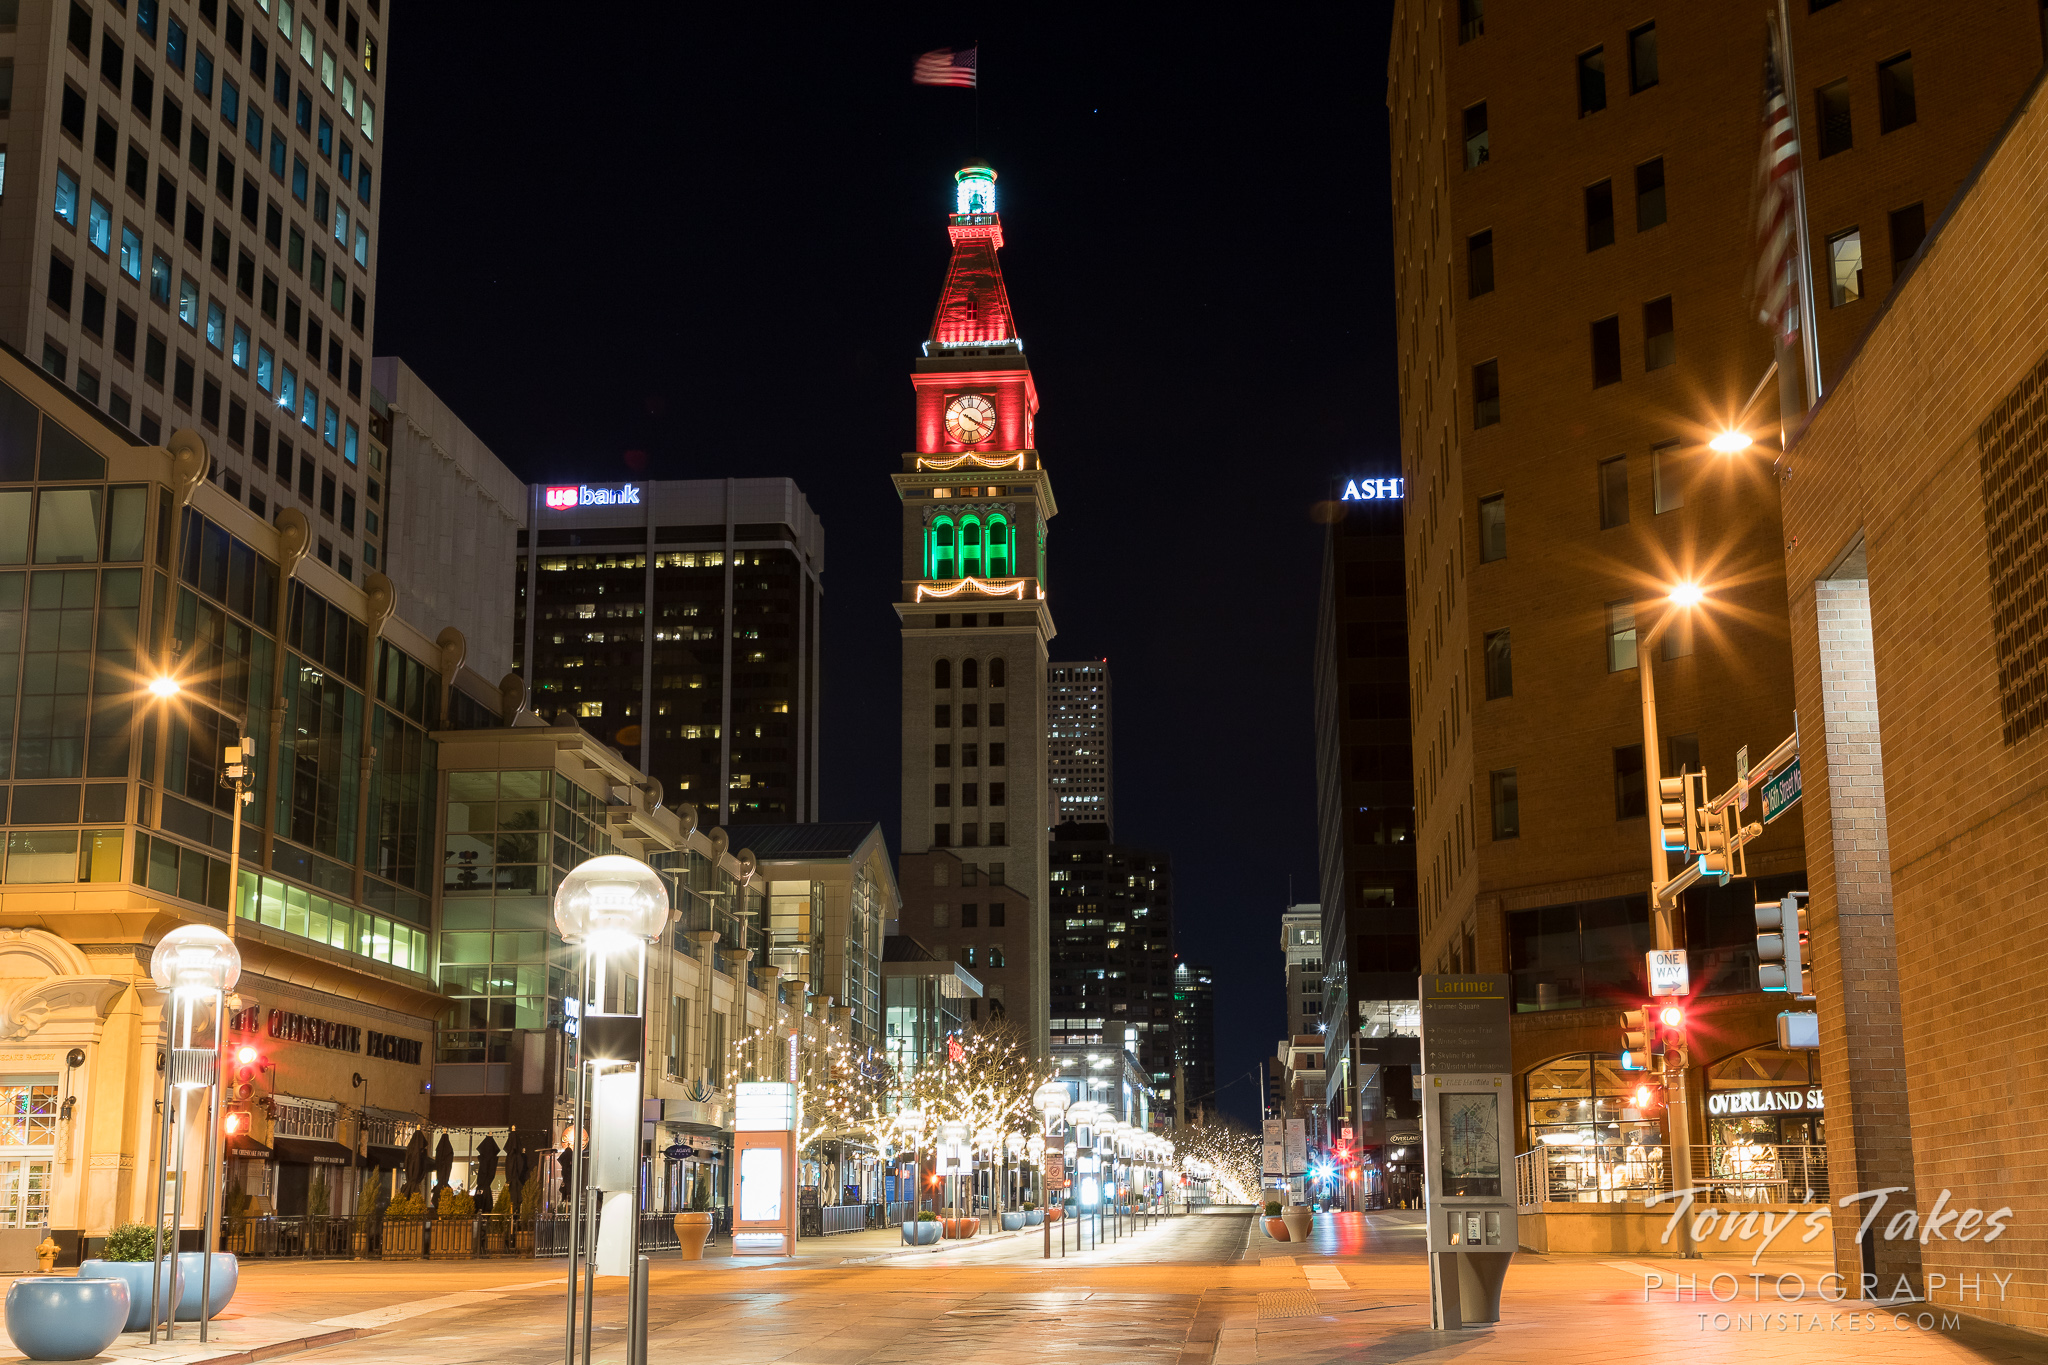 Denver's 16th Street Mall and the Daniels and Fisher Tower in holiday lights. (© Tony's Takes)